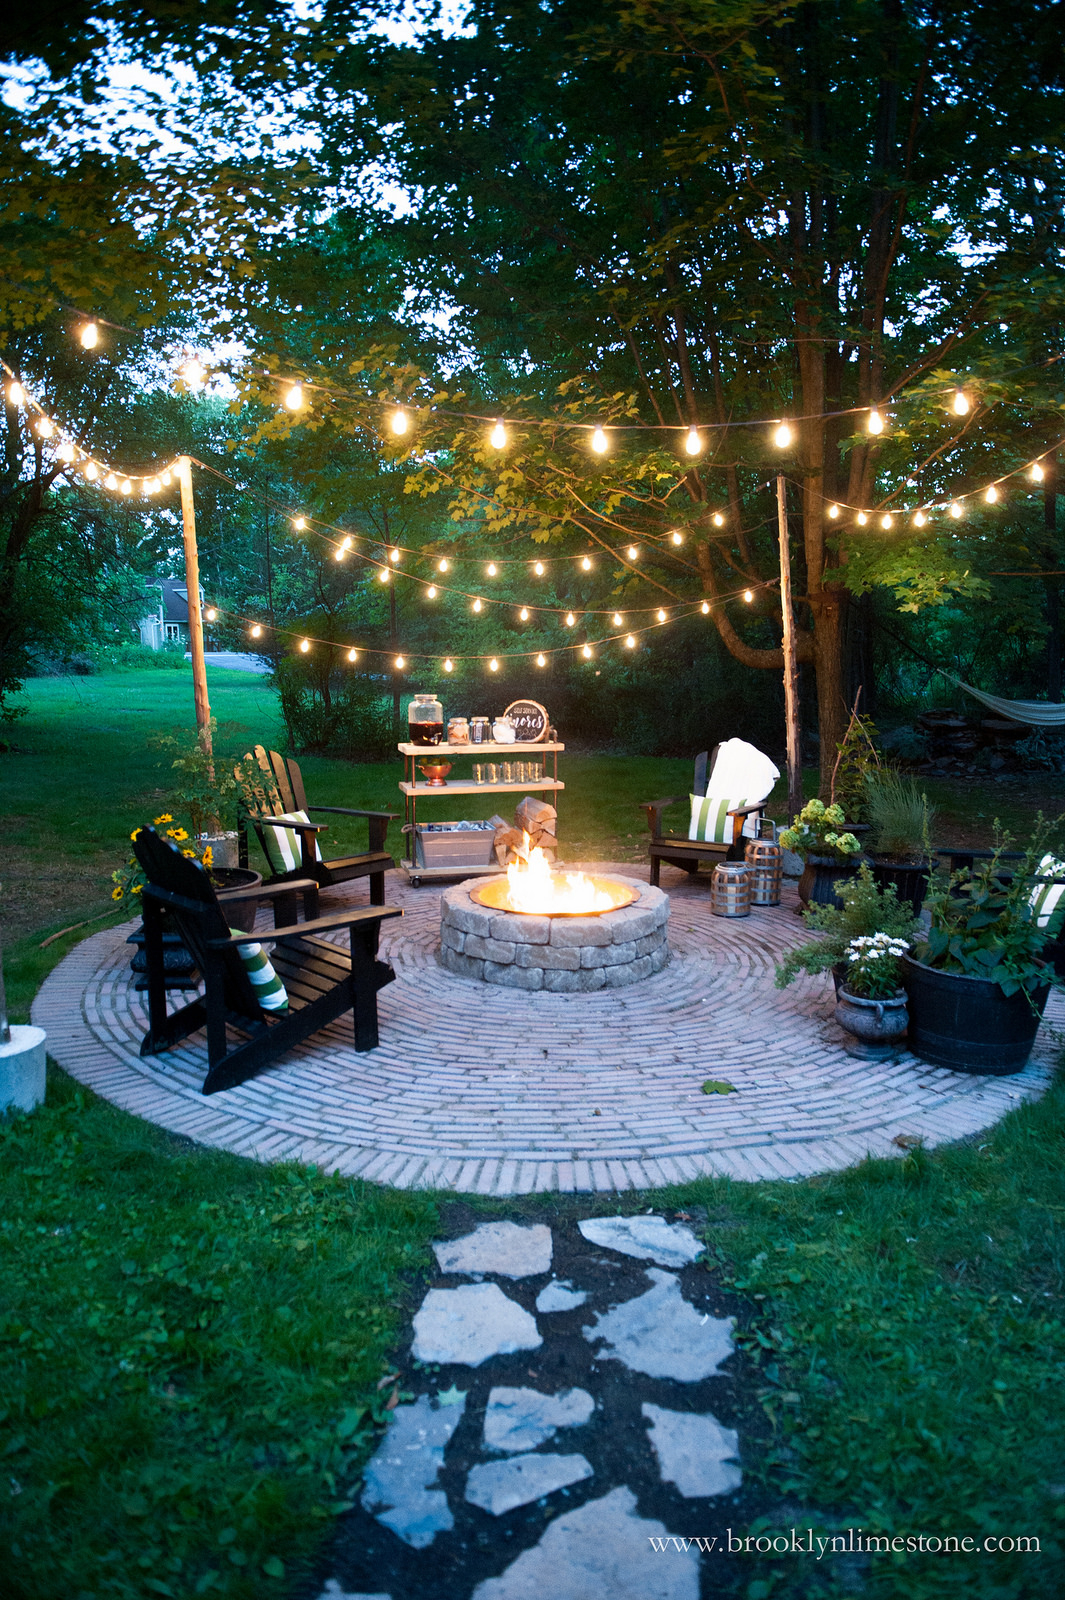 18 Fire Pit Ideas For Your Backyard Best Of Diy Ideas pertaining to 14 Genius Initiatives of How to Make Diy Ideas For Backyard